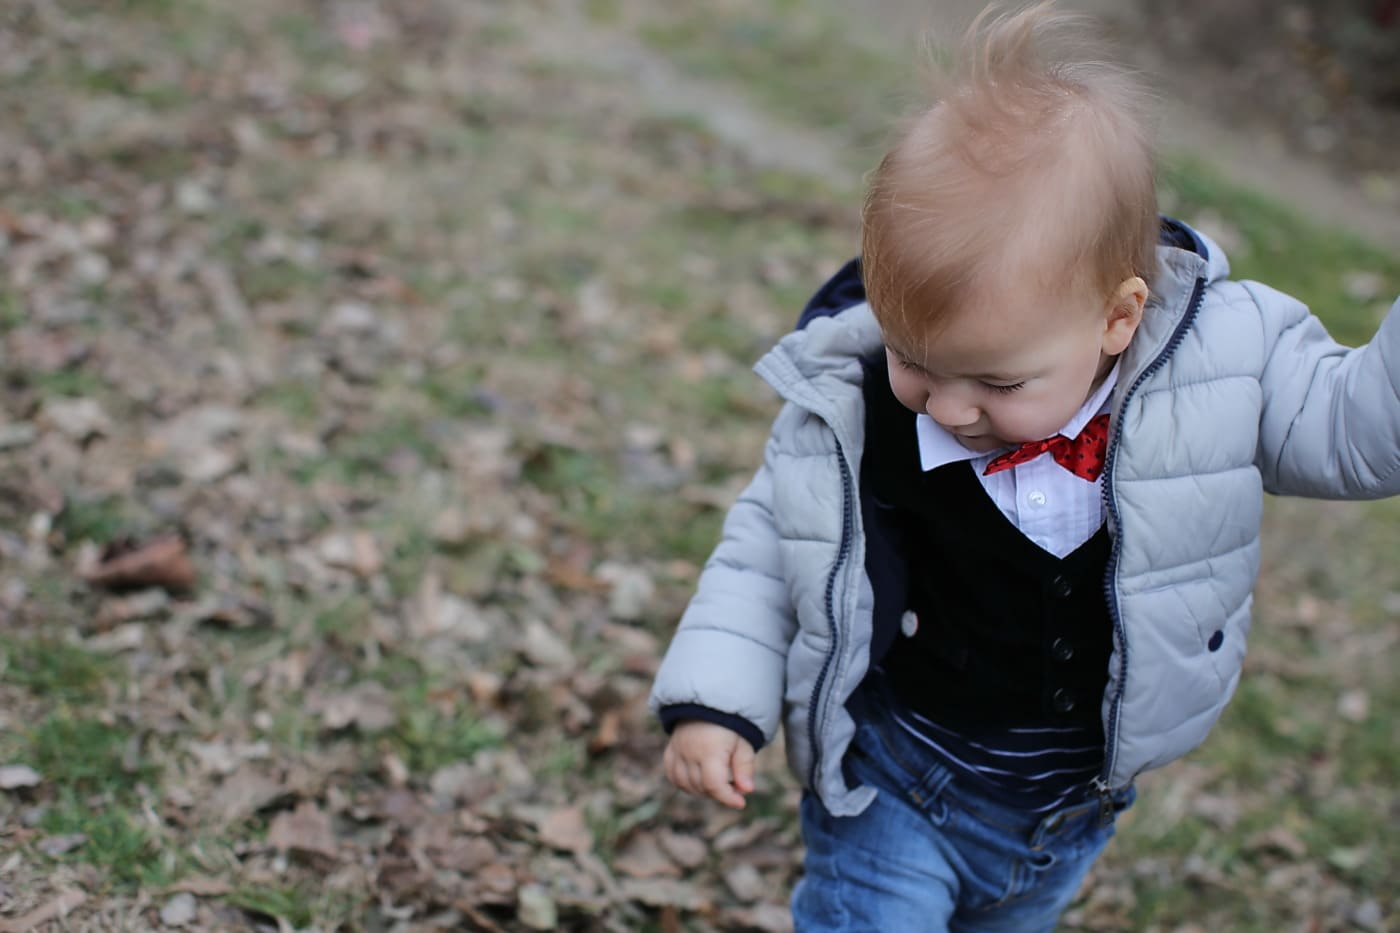 toddler, tie, tuxedo suit, jacket, kid, child, grass, childhood, cute, smile